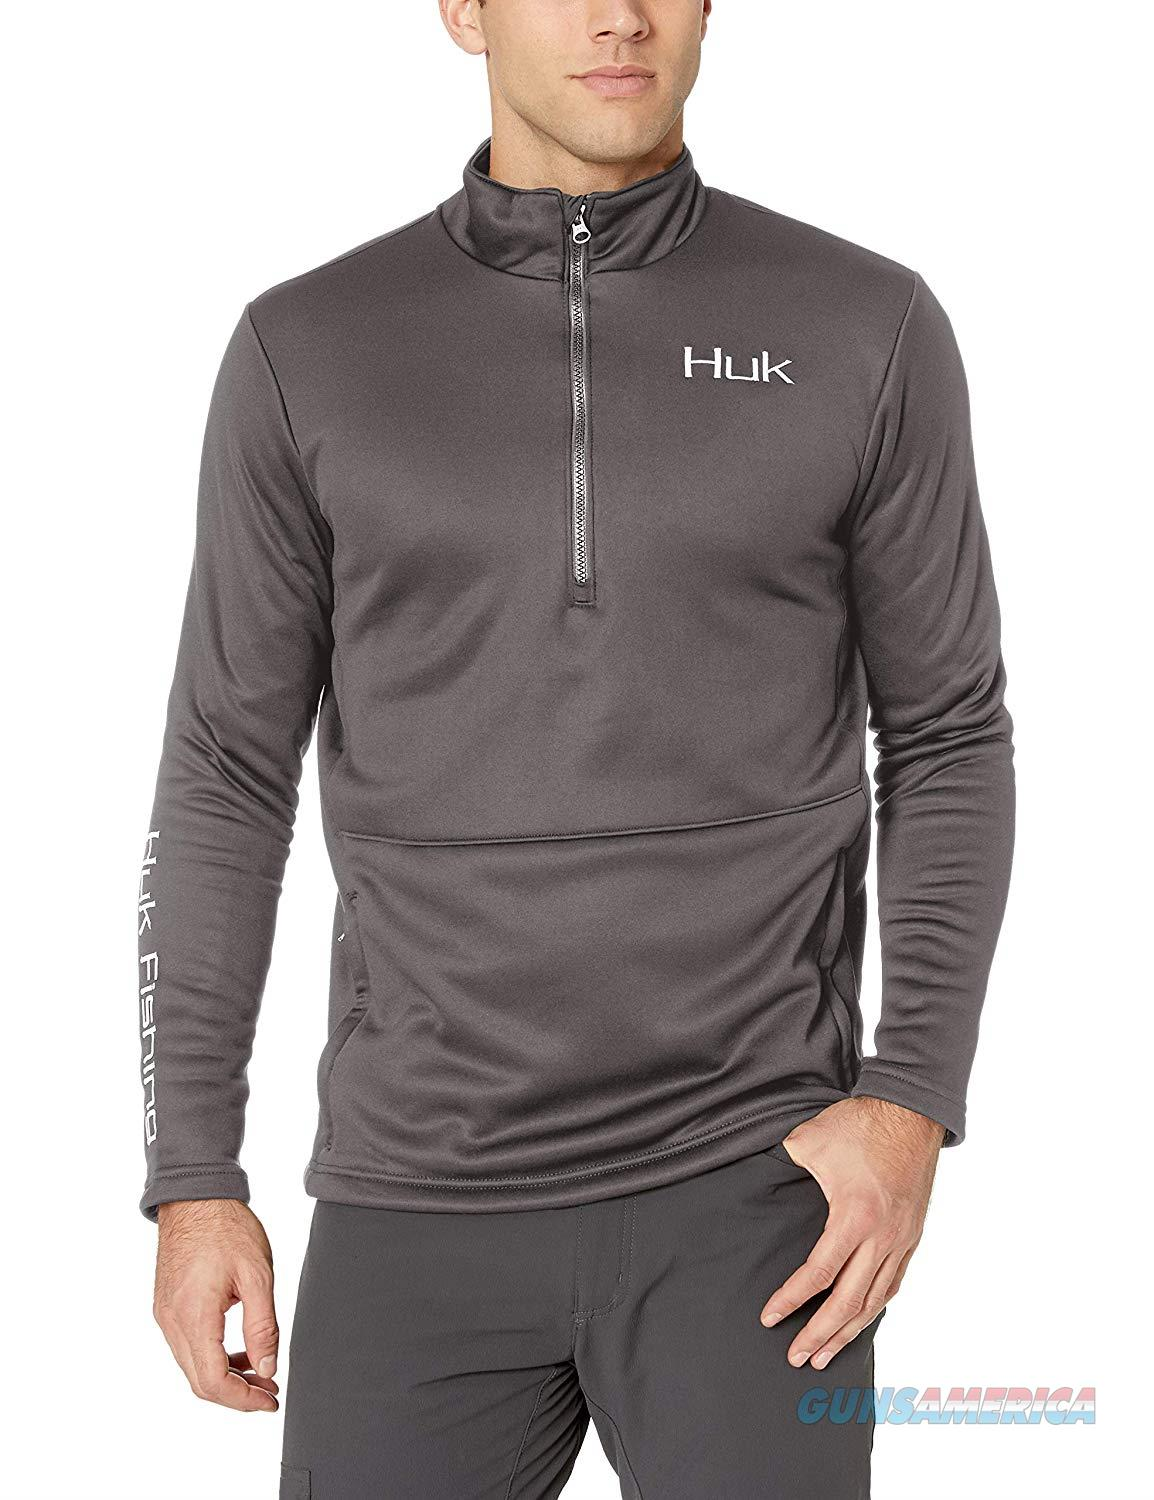 Huk Tidewater 1/4 Zip XXL Grey  Non-Guns > Hunting Clothing and Equipment > Clothing > Shirts